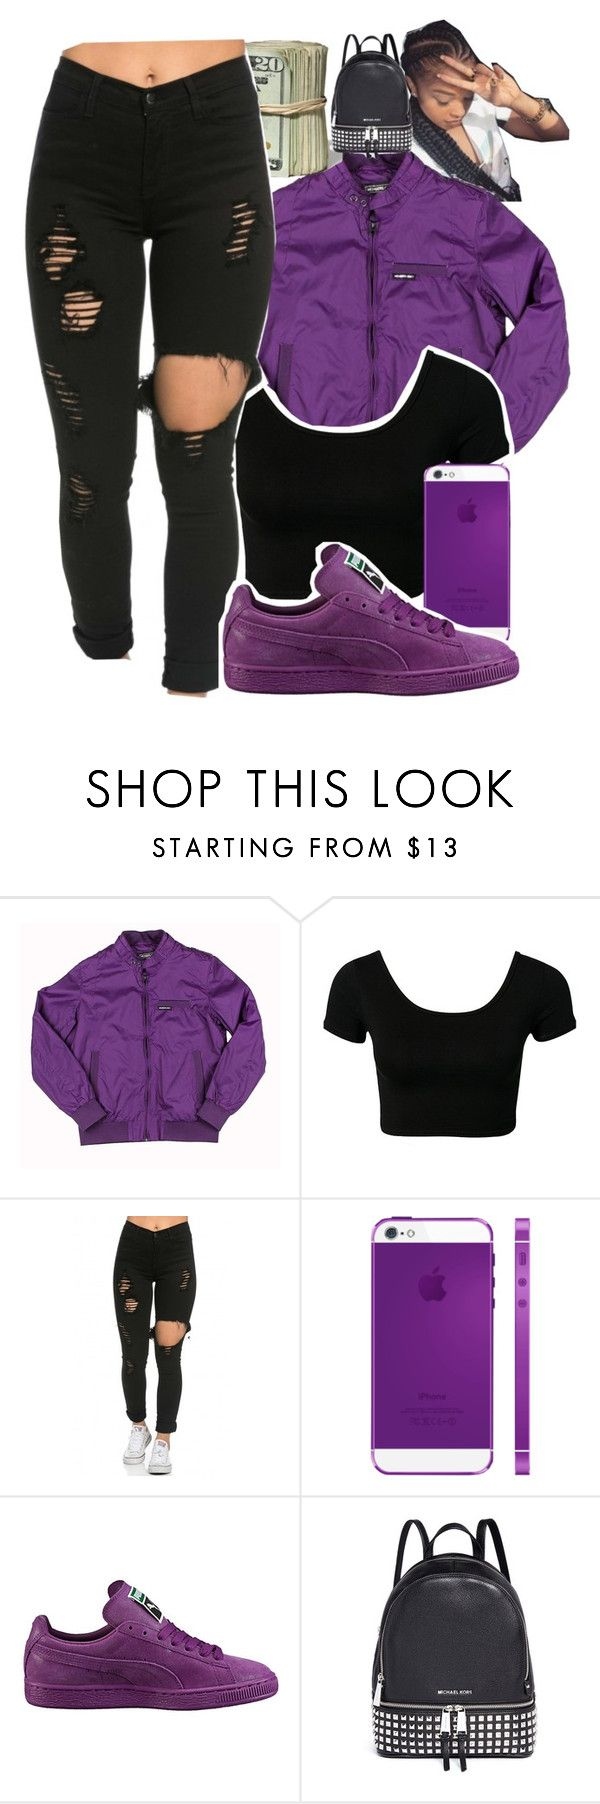 """Untitled #979"" by kaja-bear ❤ liked on Polyvore featuring Members Only, Puma and Michael Kors"